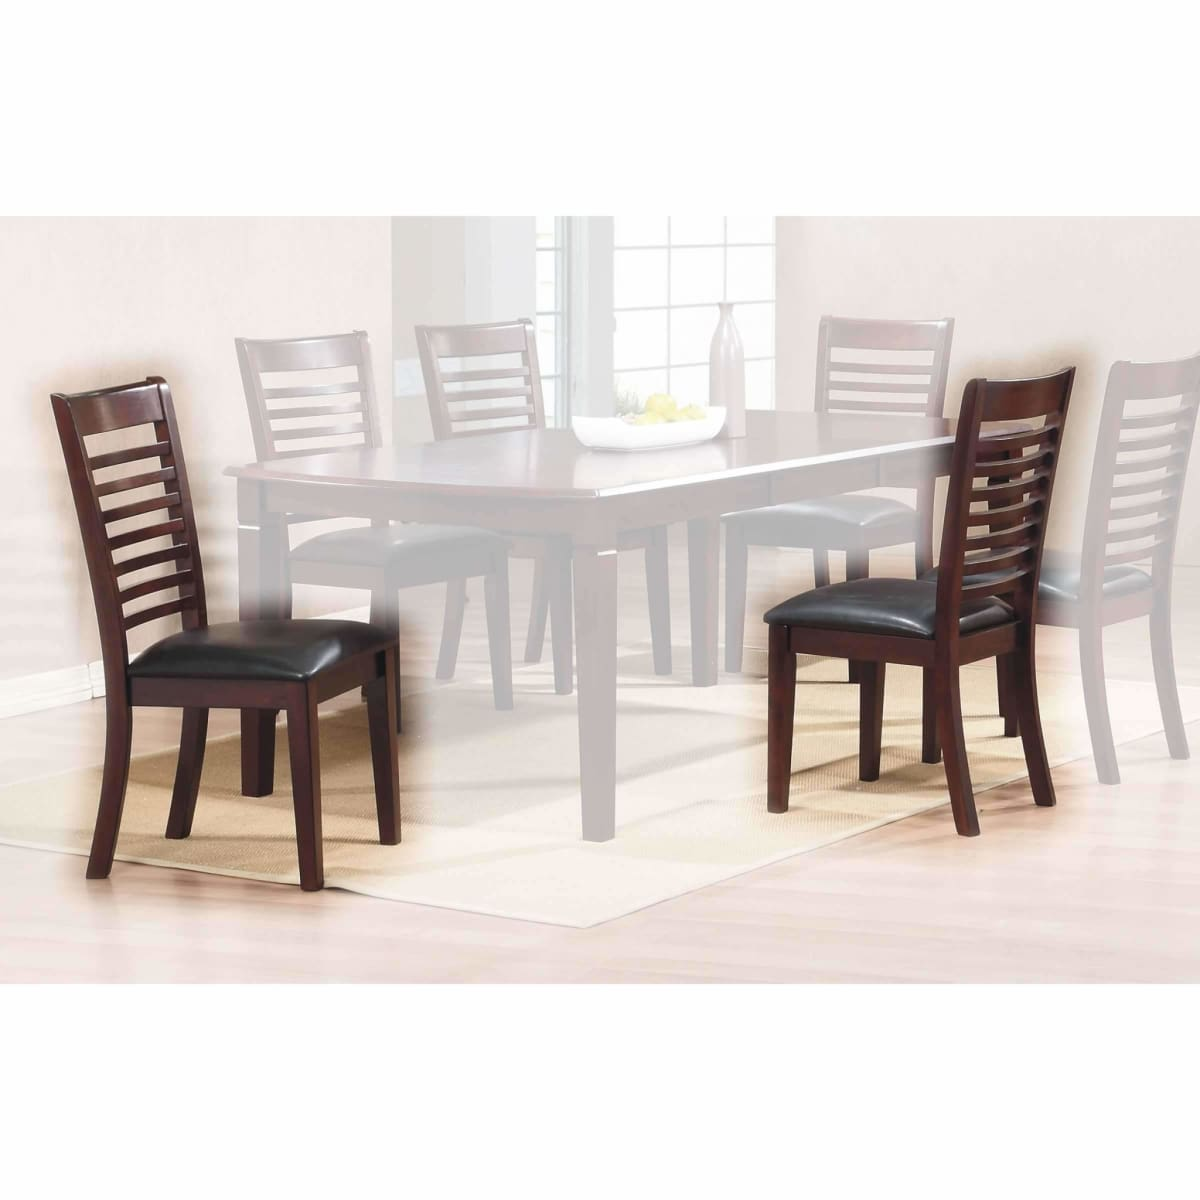 Santa Fe Pu Ladderback Side Chair - dining chairs